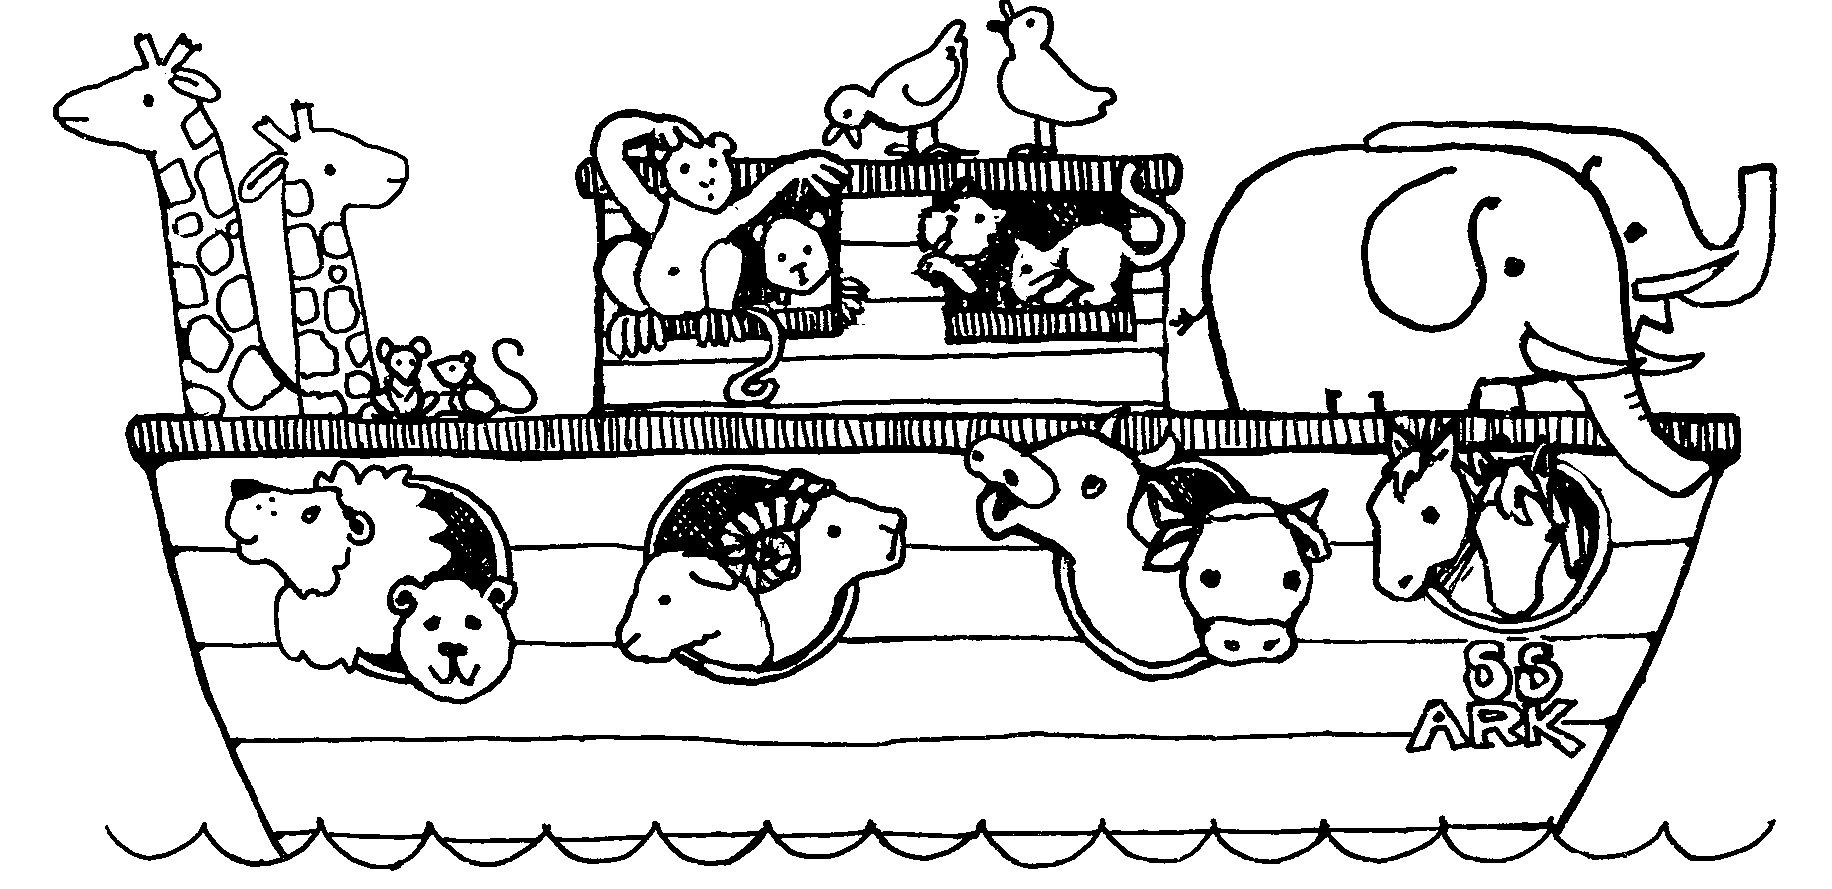 Best ideas about Noah'S Ark Free Coloring Pages . Save or Pin free noah s ark coloring pages Now.